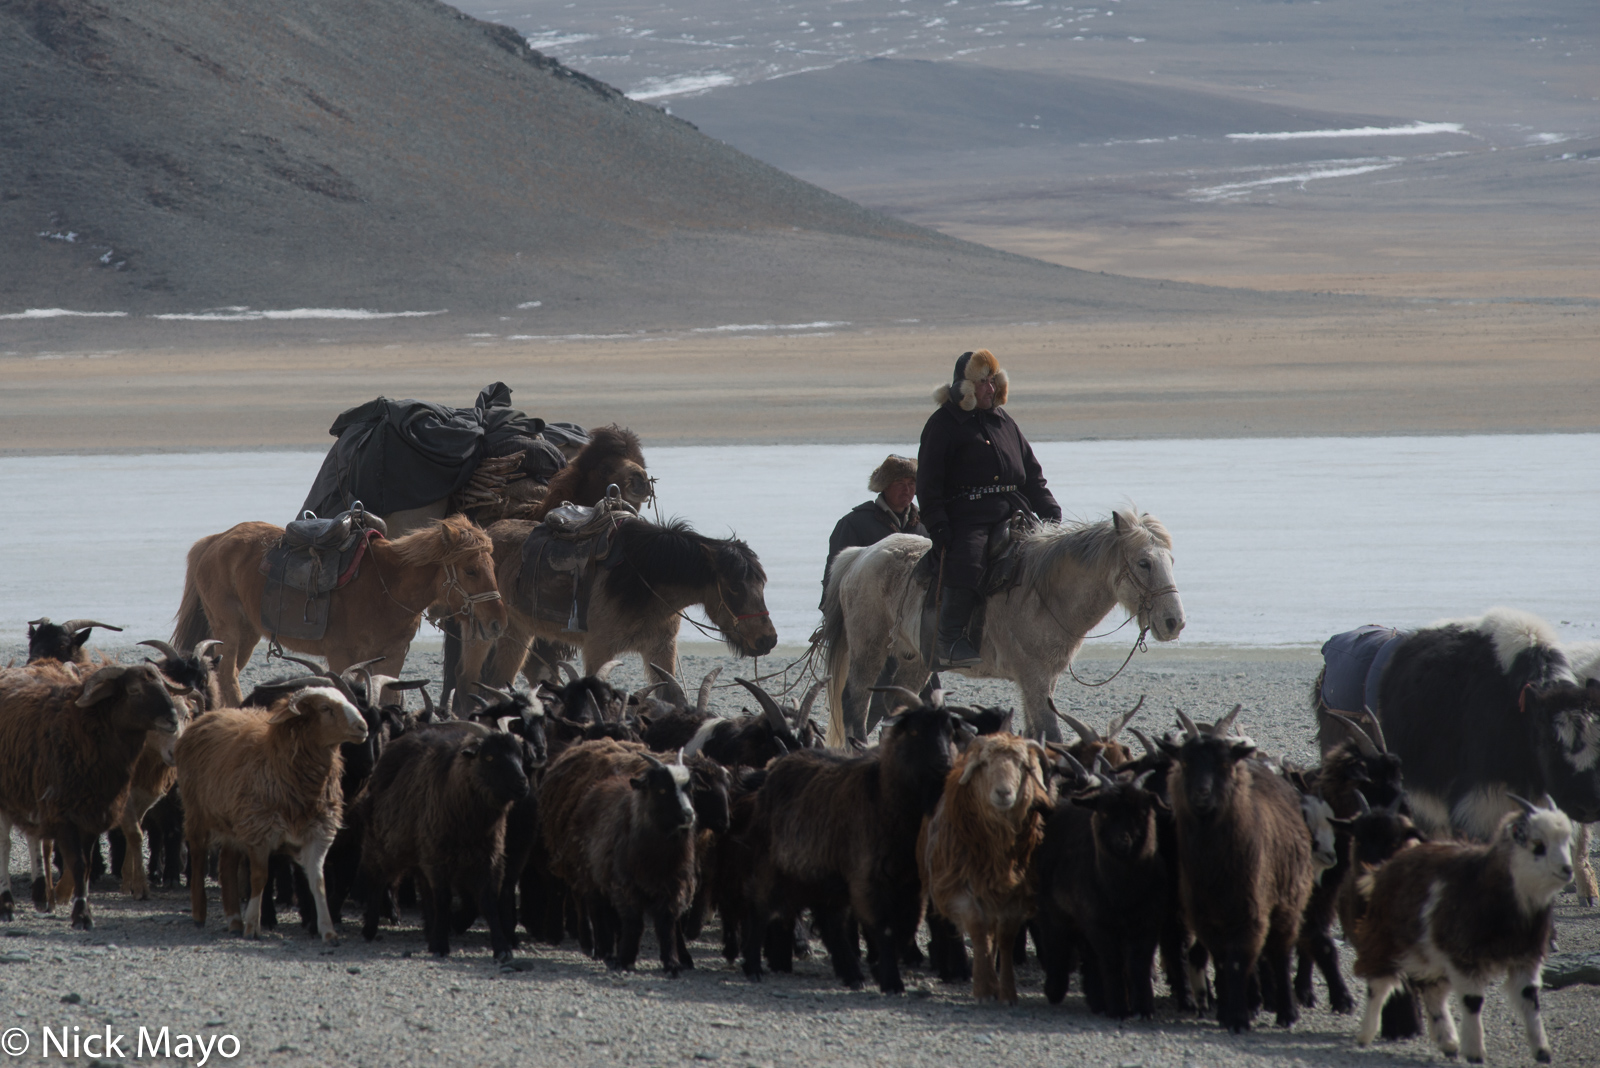 Kazakh herdsmen with their horses and pack camel driving their sheep and goats during the spring migration in Sagsai sum.